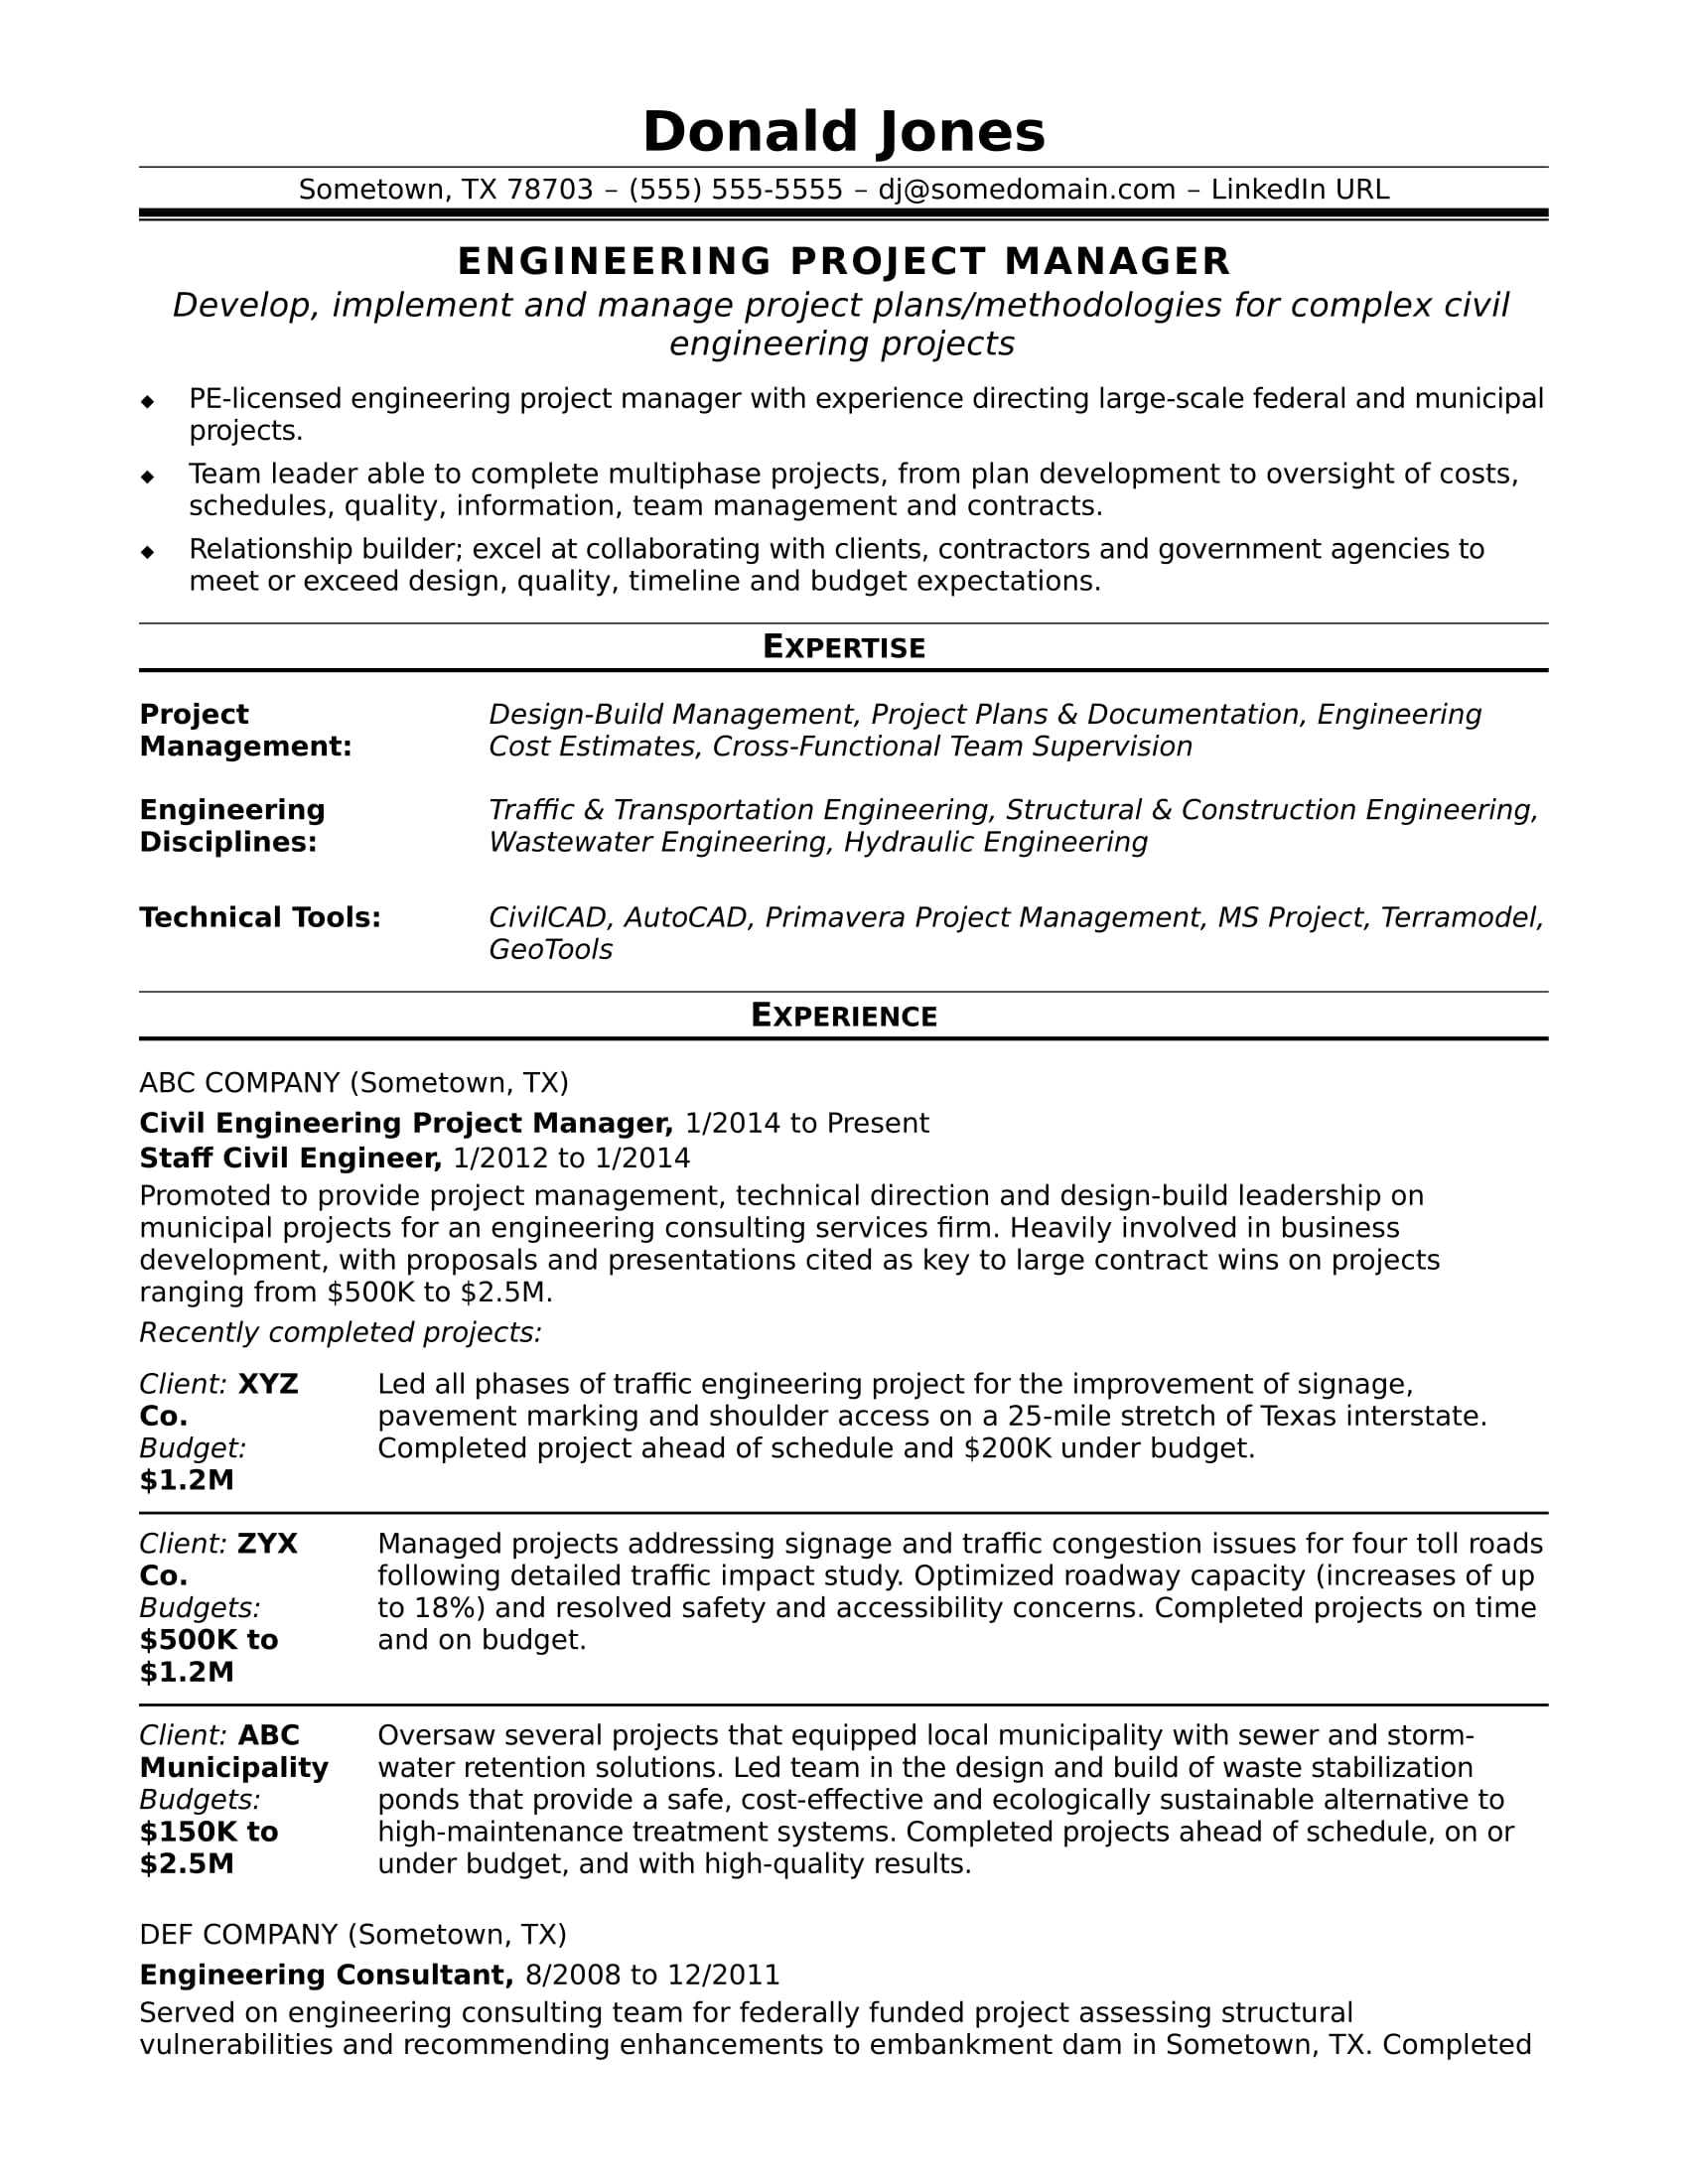 Sample Resume For A Midlevel Engineering Project Manager  Resume Project Manager